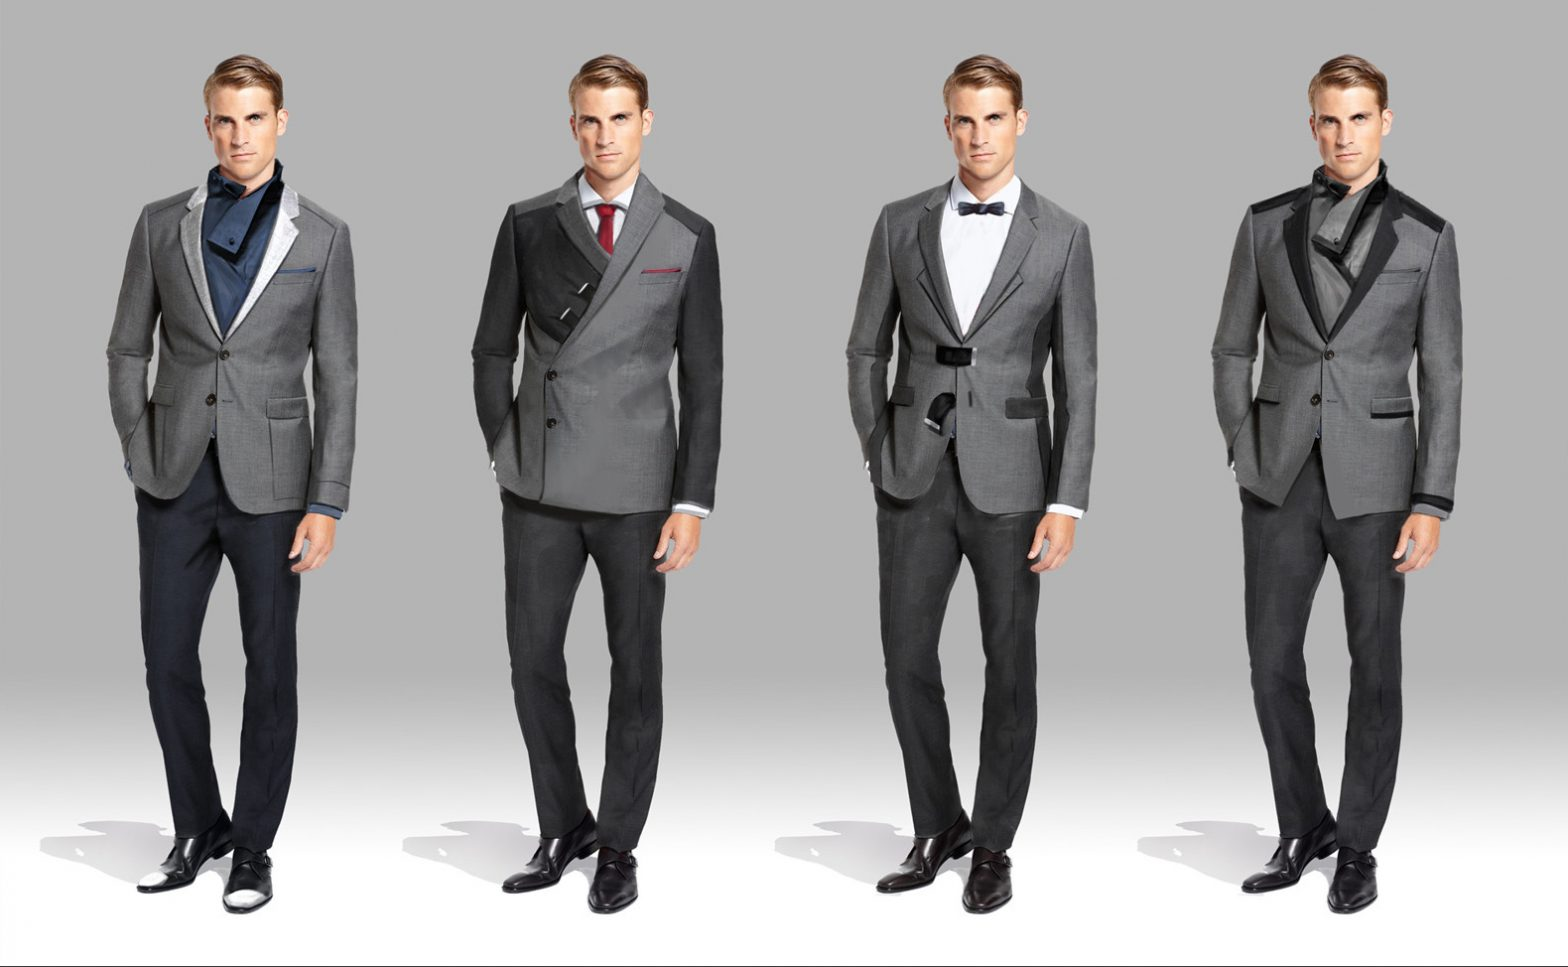 Futuristic Men Suits